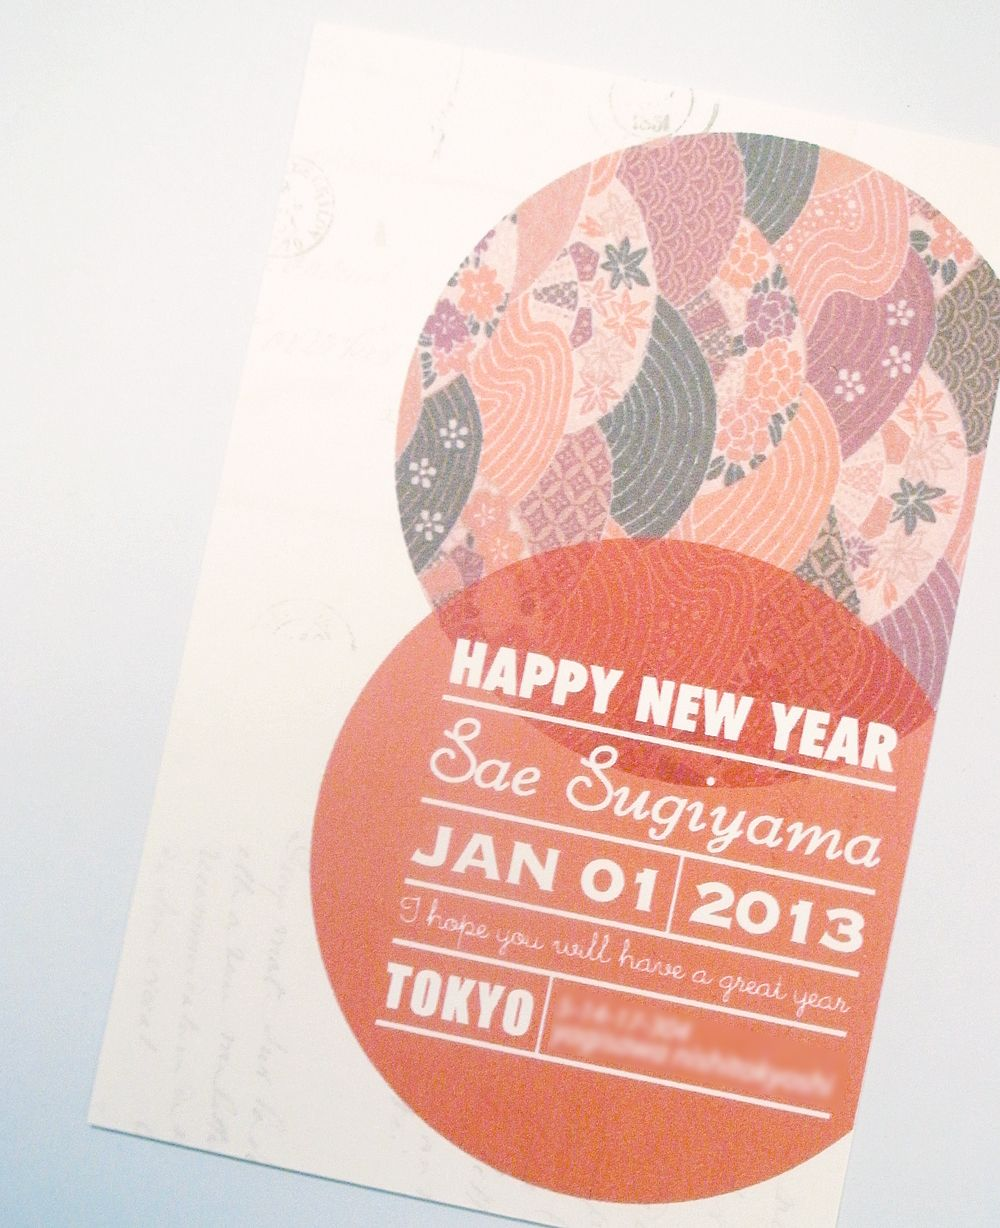 new year card New year card design, Graphic design